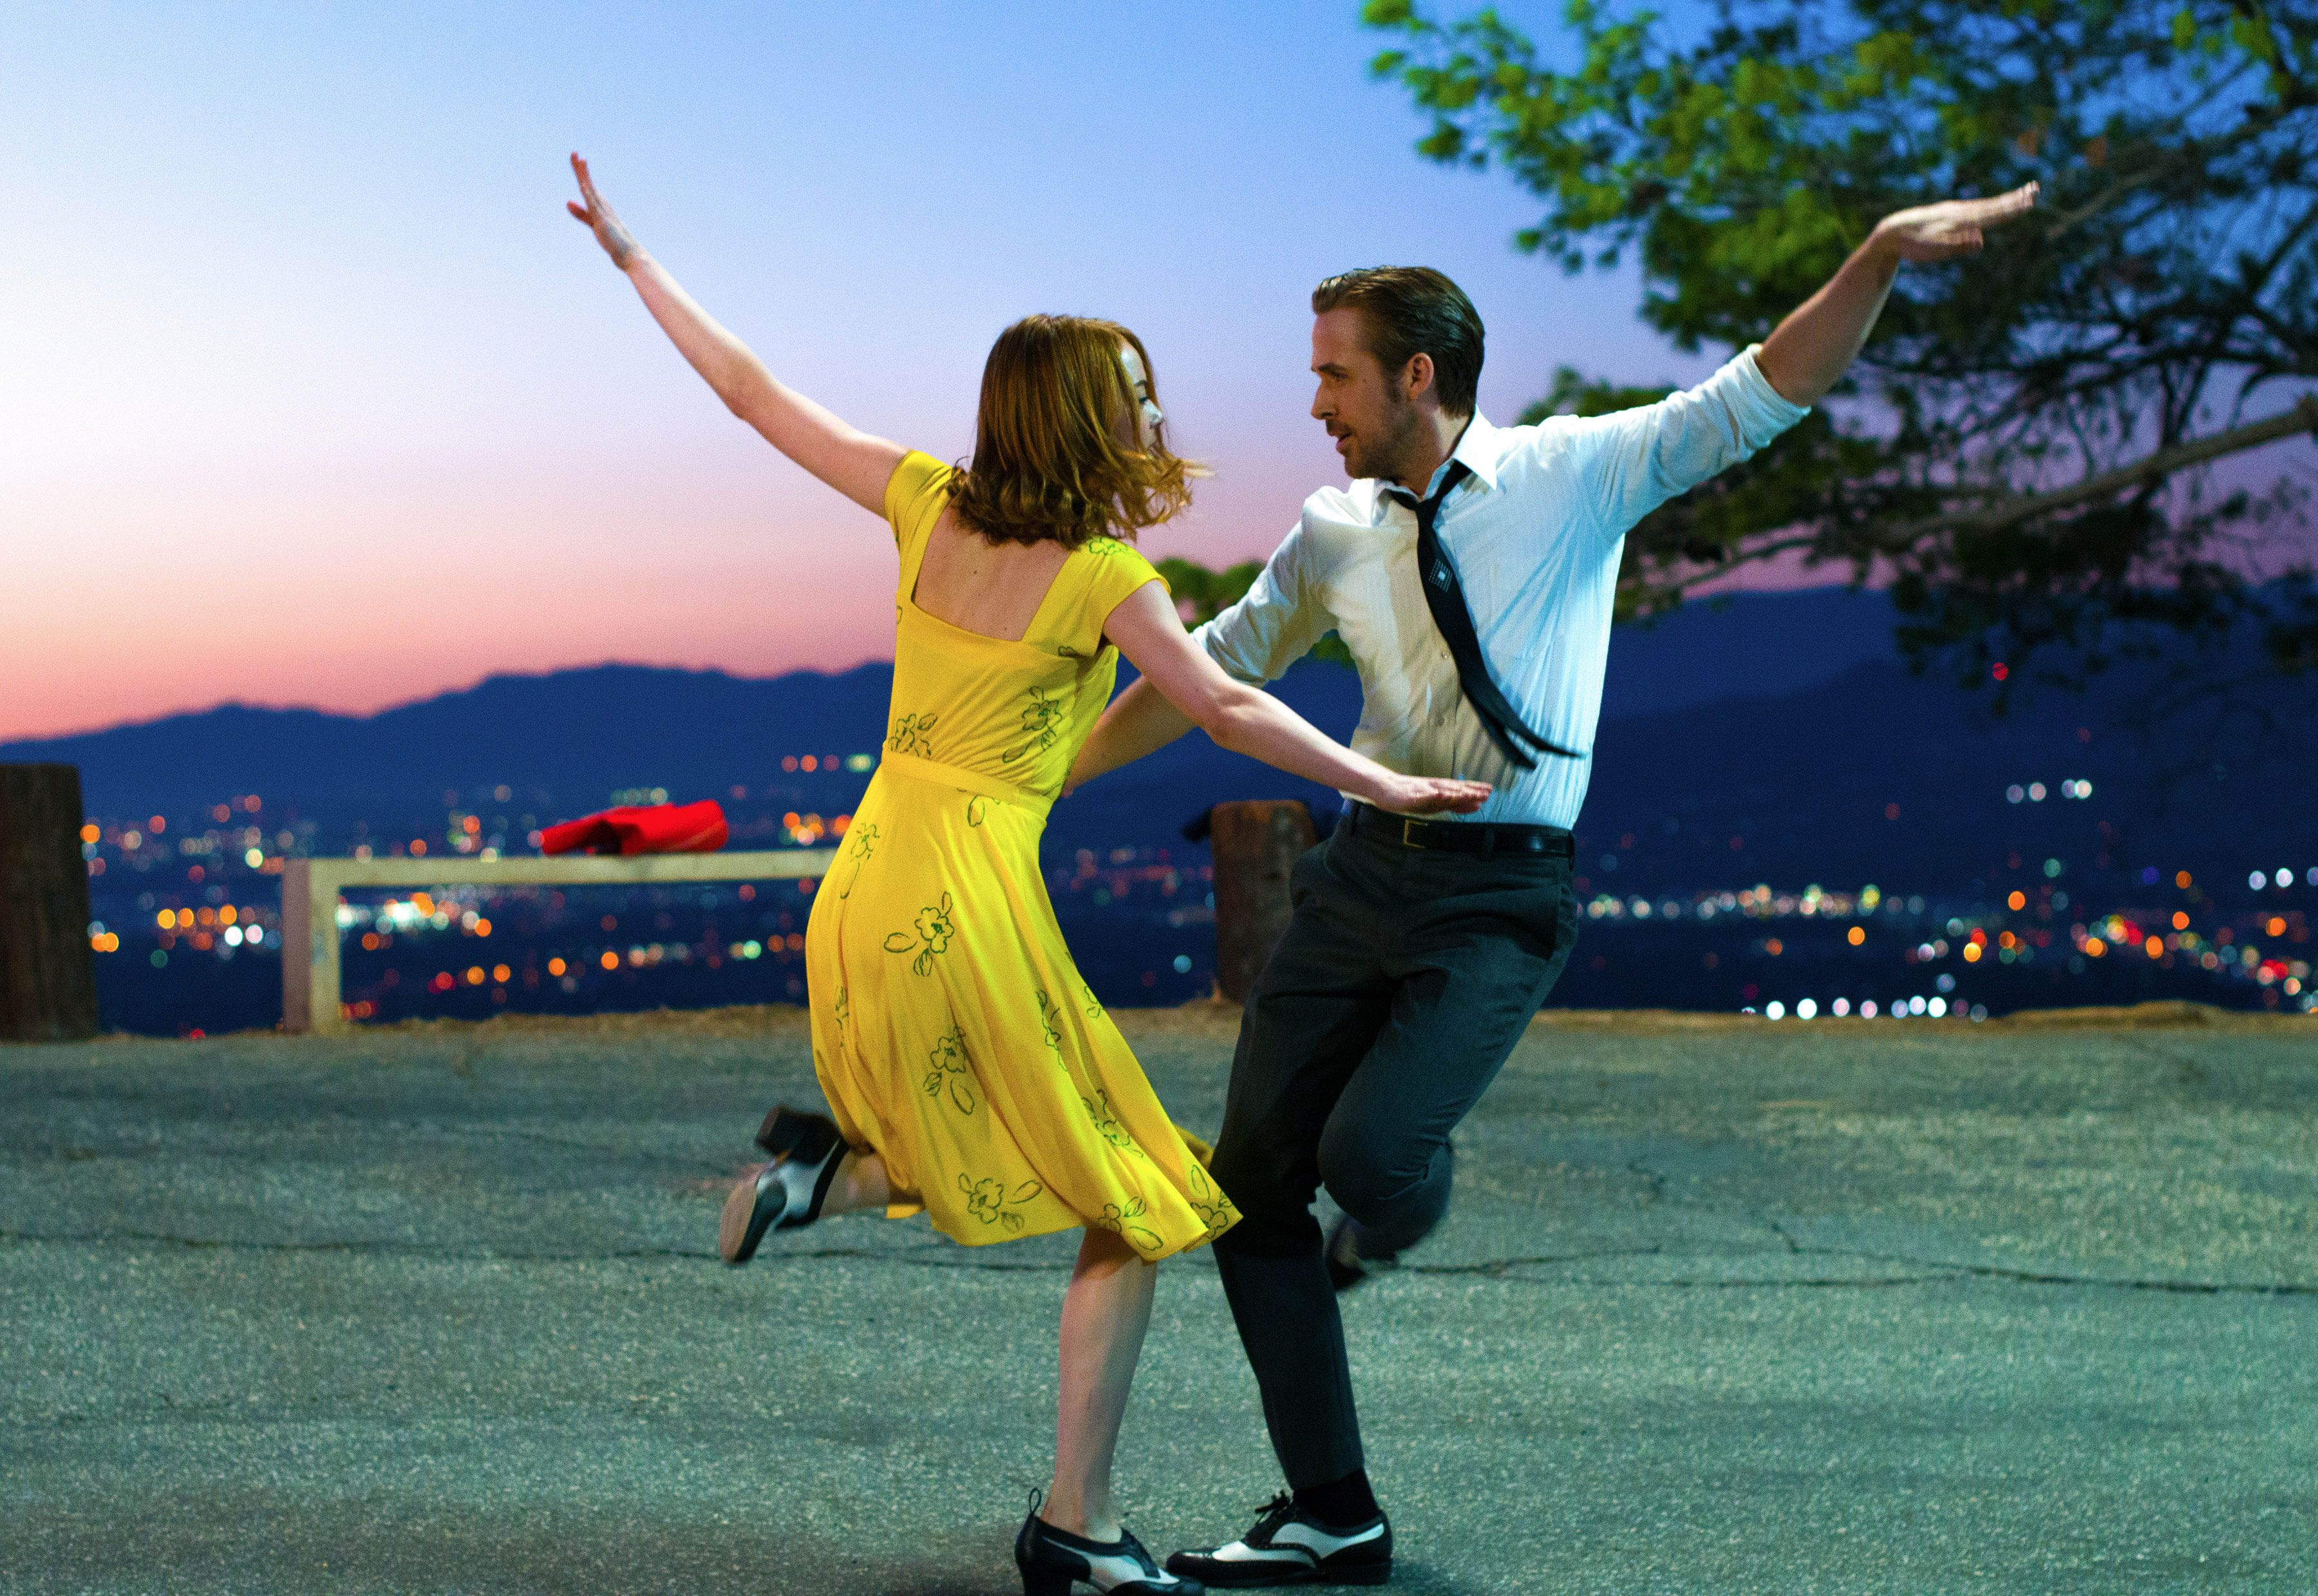 Movies that make you feel good